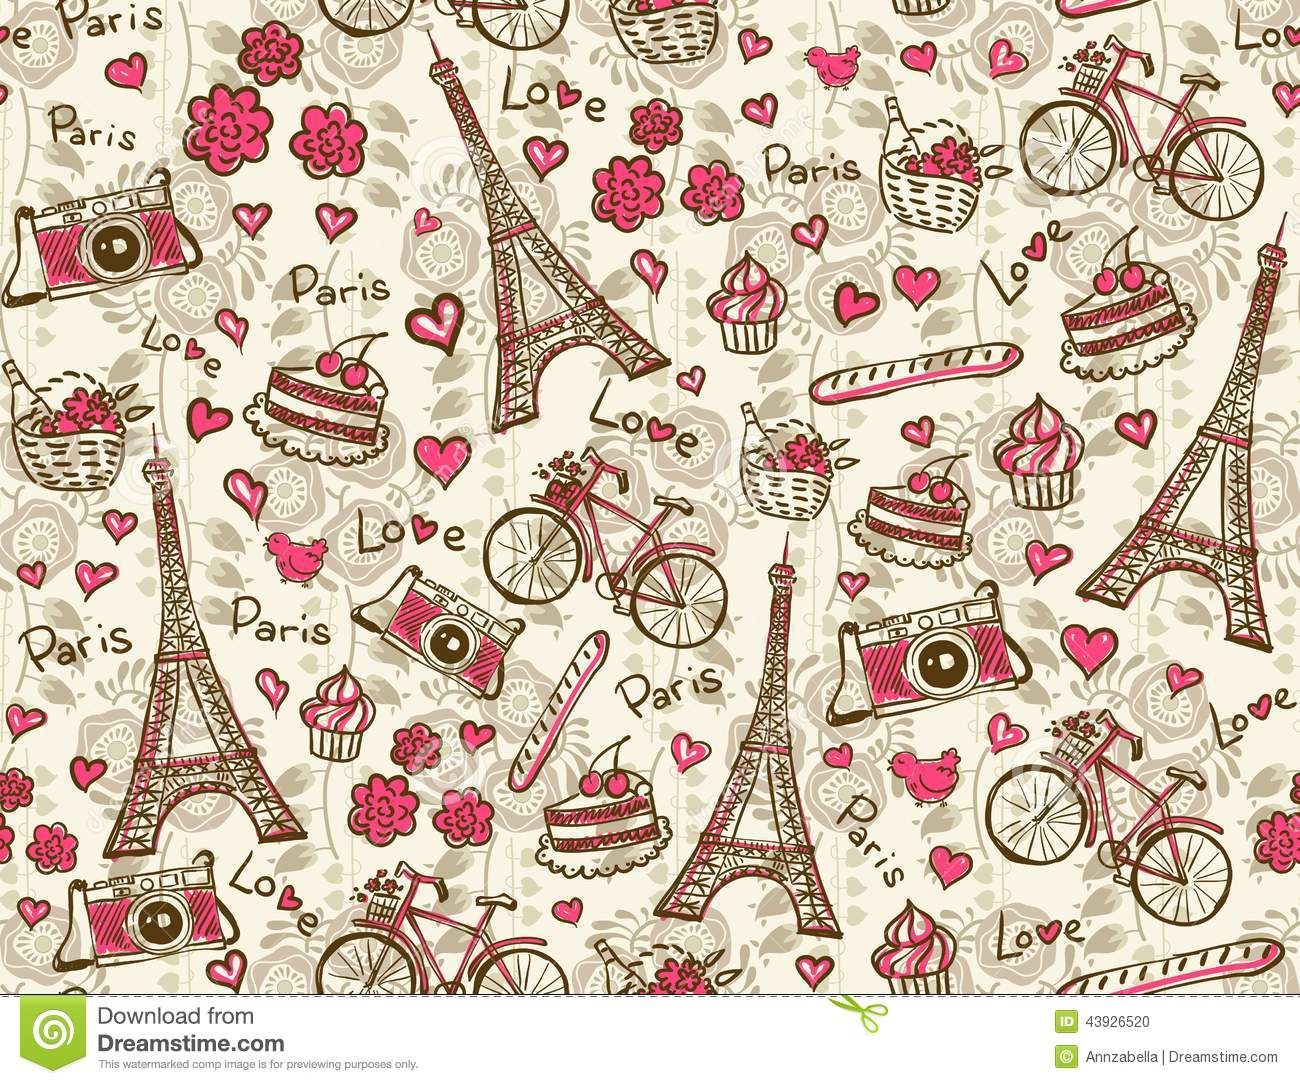 Scrapbook paper eiffel tower - Find This Pin And More On Paper Scrapbook Printables